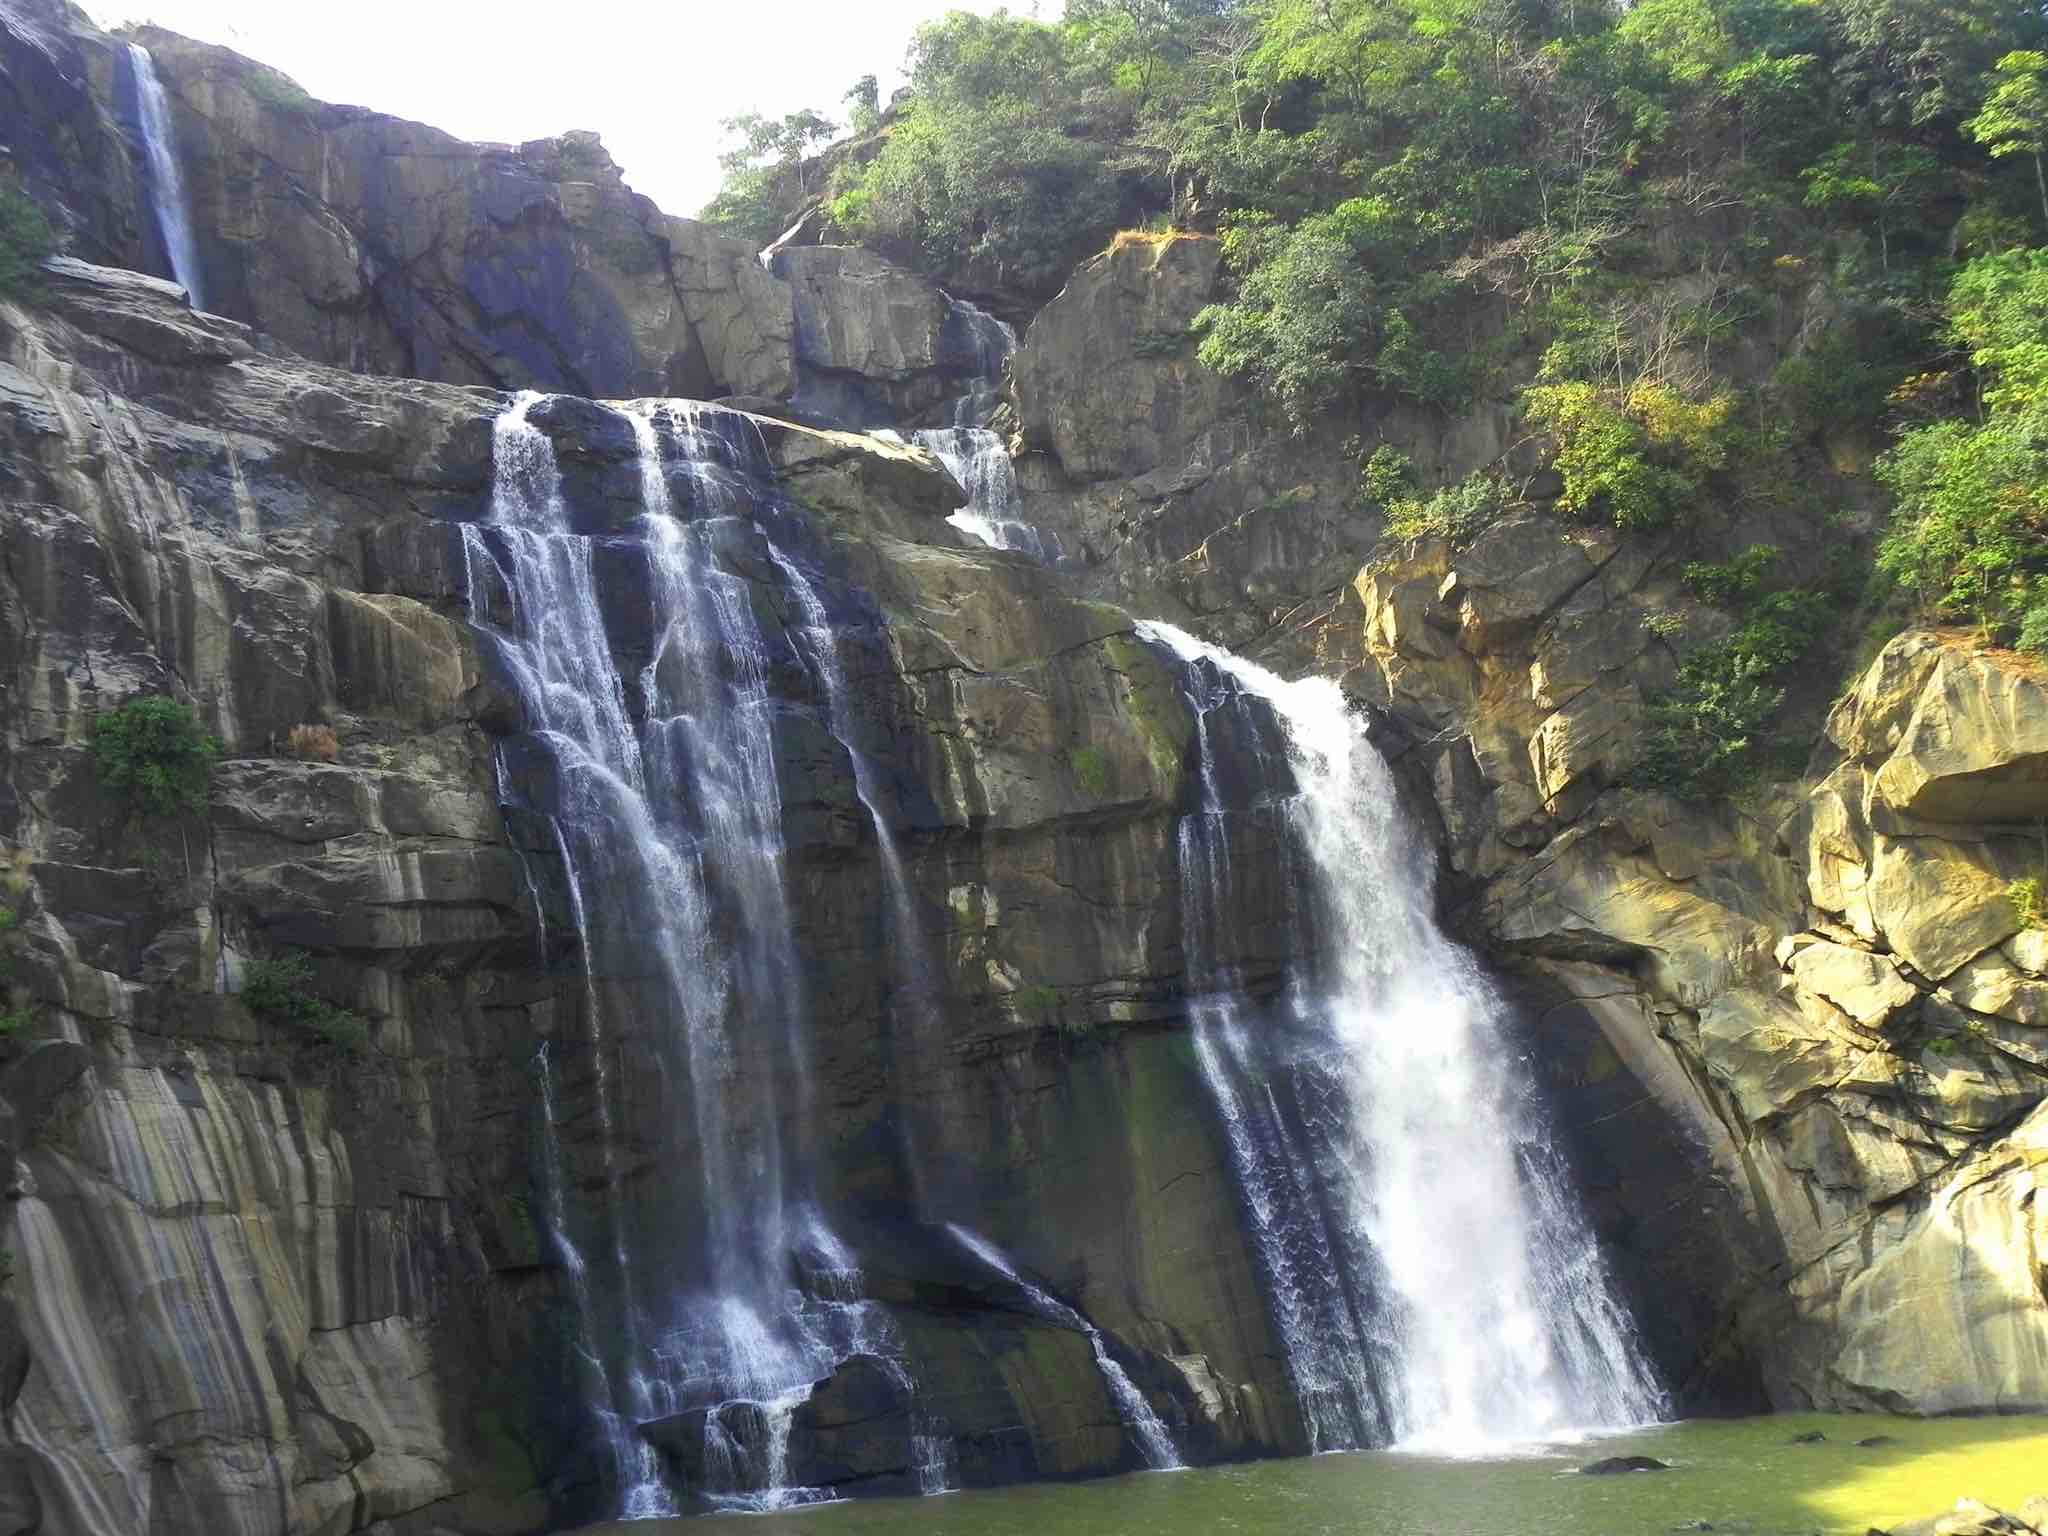 Hundru Falls Jharkhand Travel Guide_Things to do_CC BY 2